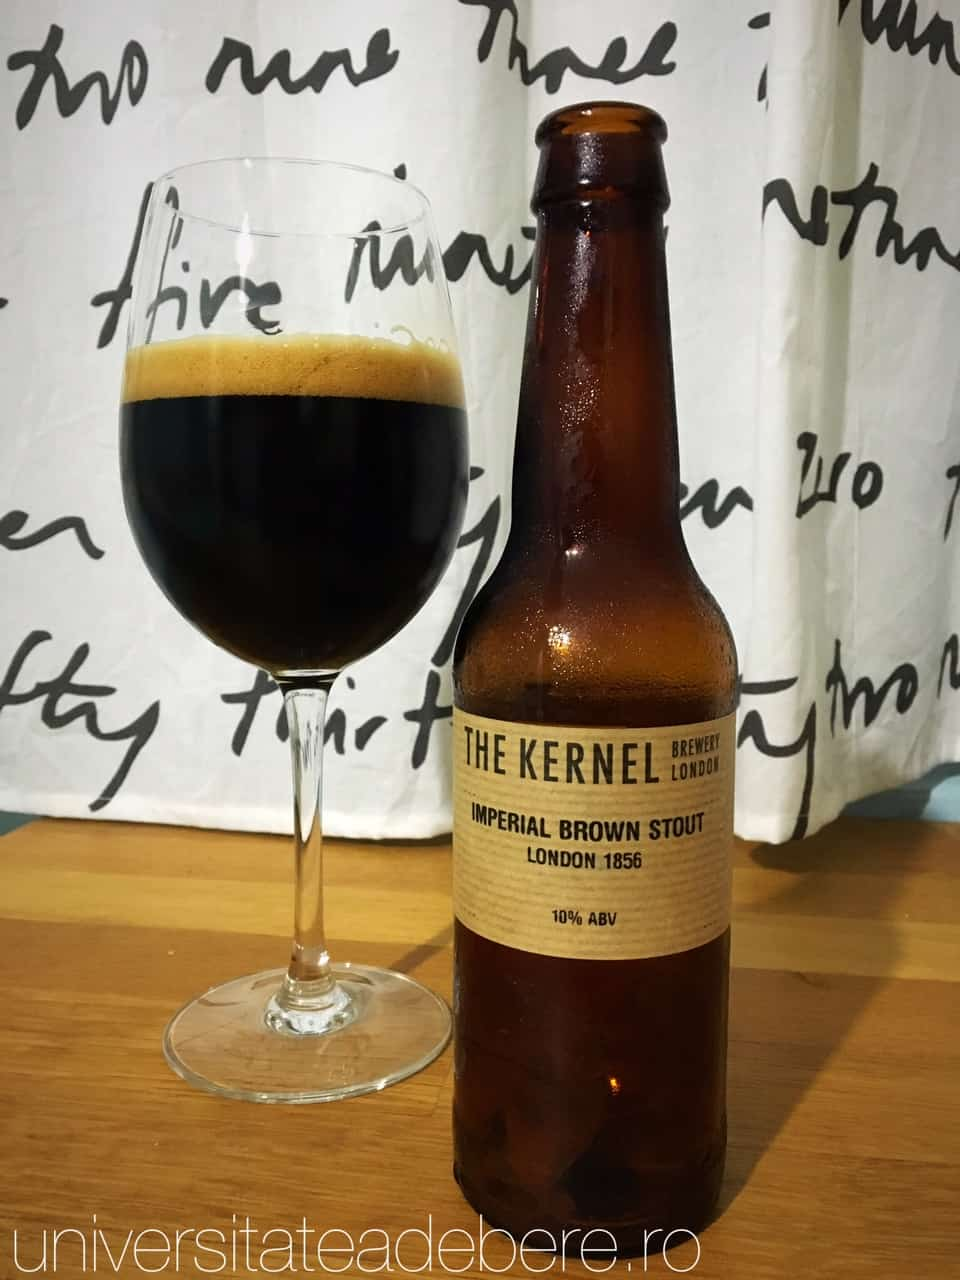 Photo of The Kernel Imperial Brown Stout, ceva deosebit